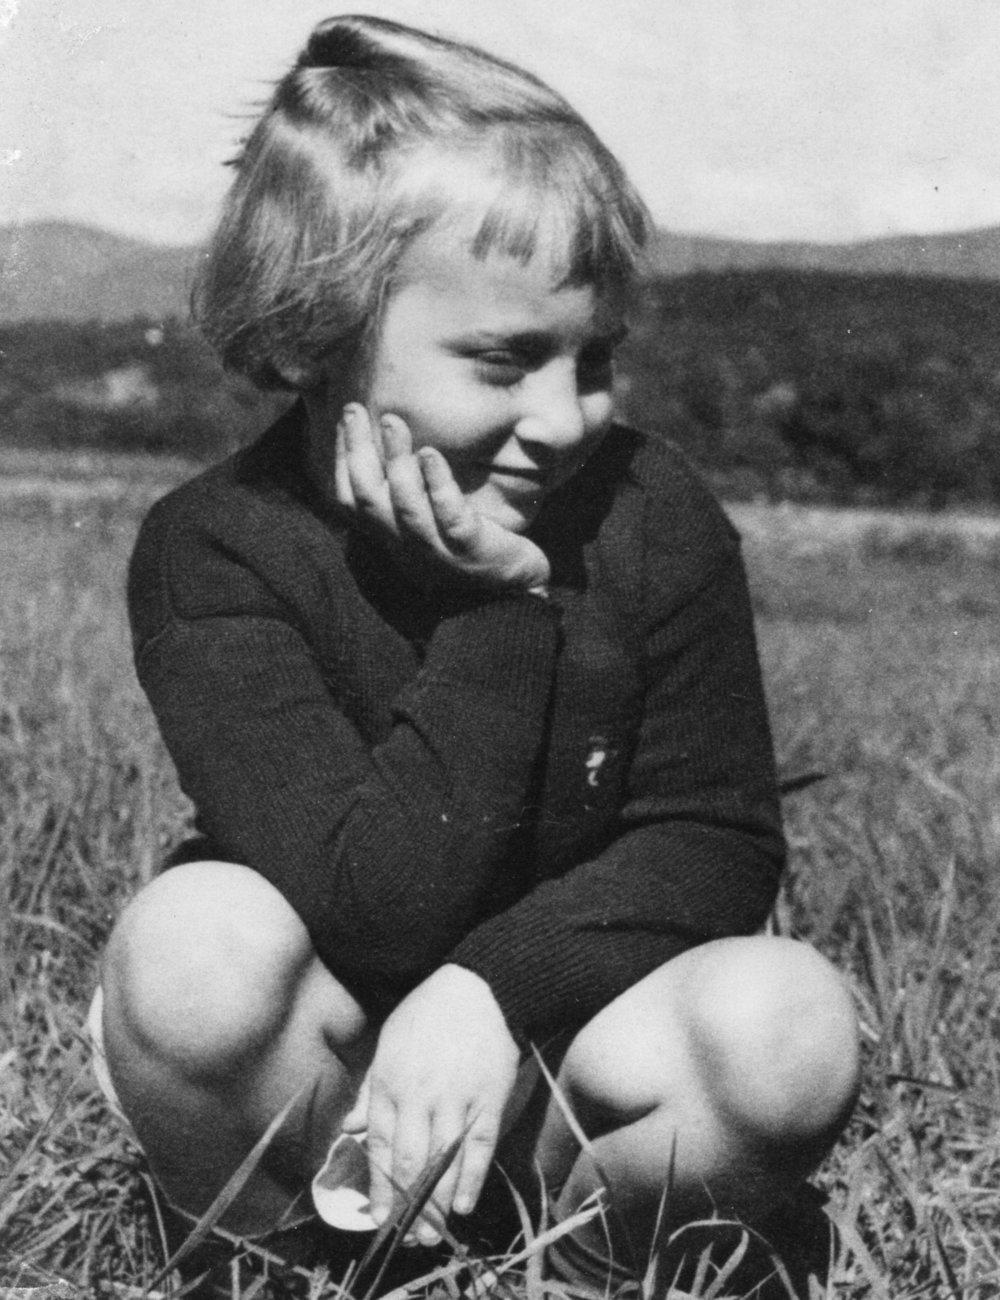 Naomi Rose as a contemplative child in nature